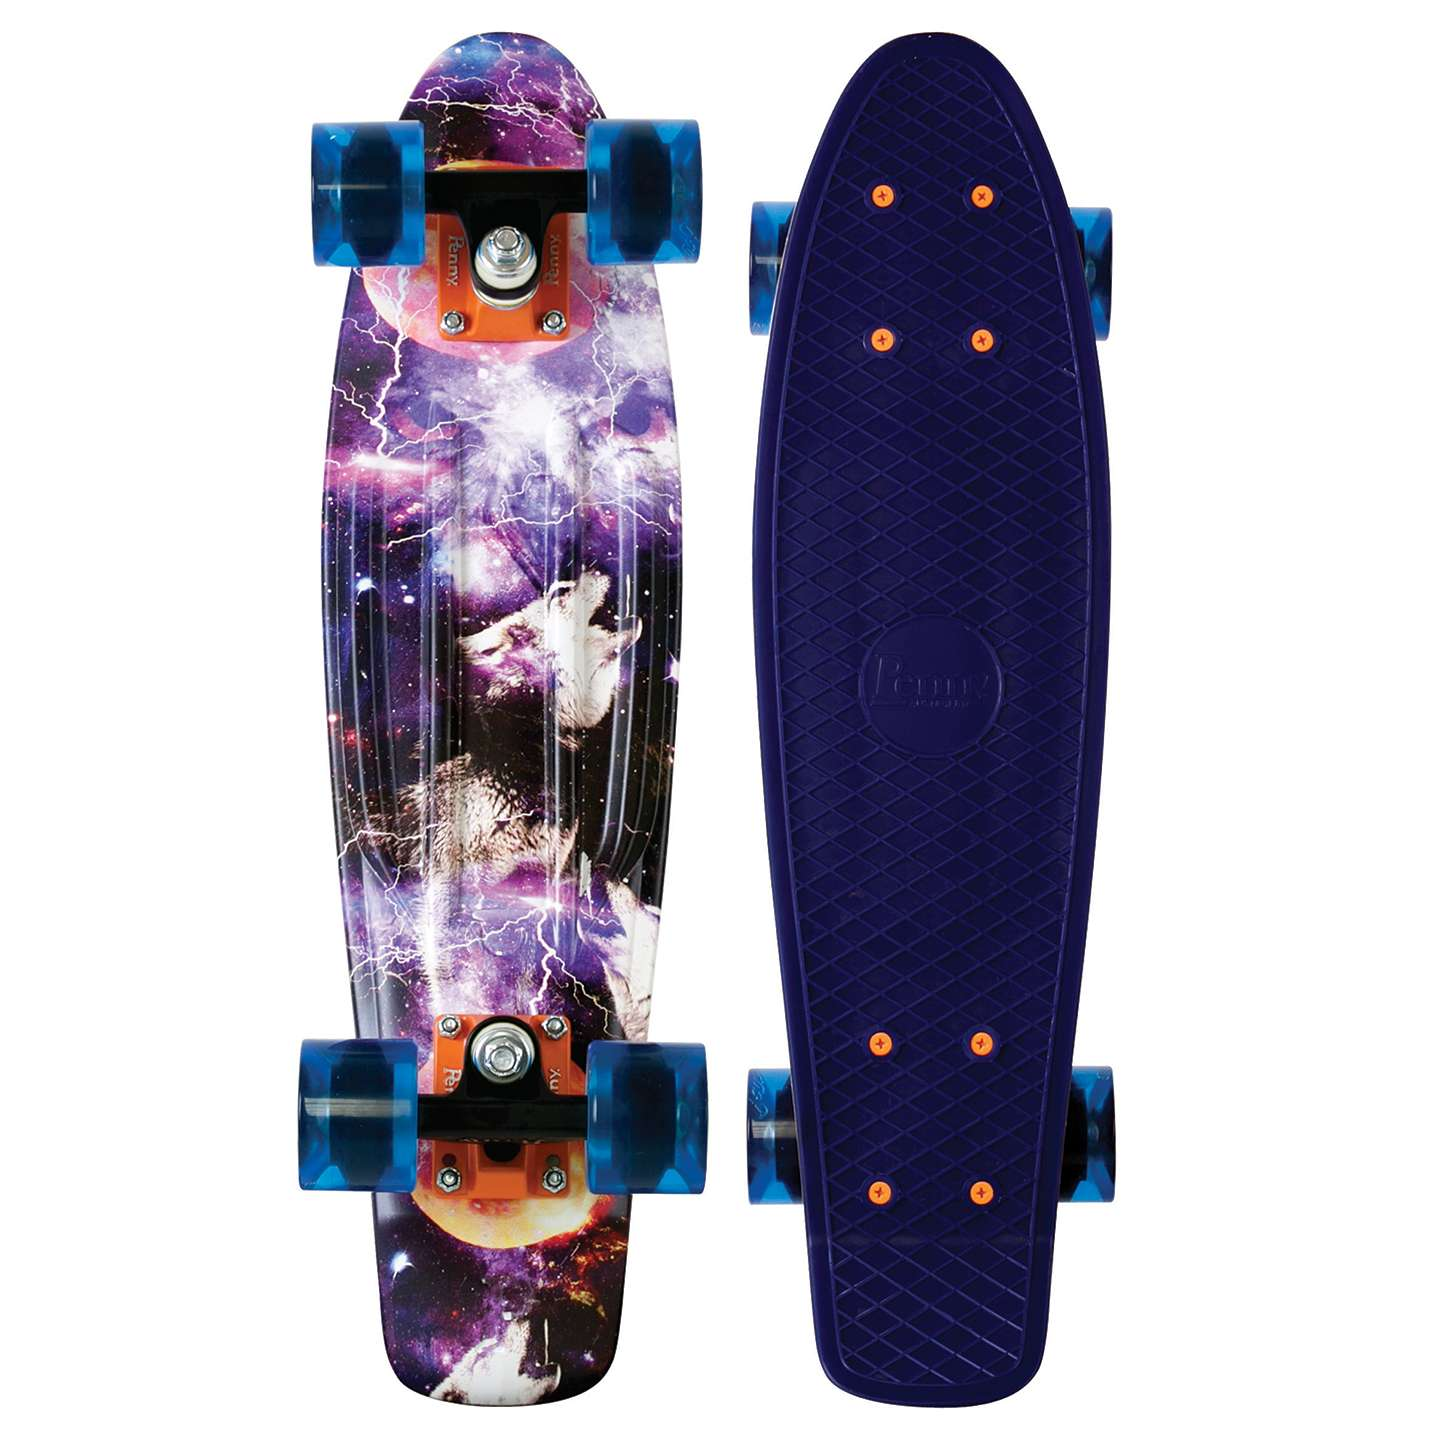 Penny Skateboards Girl Wallpaper Penny Space 22 Quot Skateboard King Of Watersports